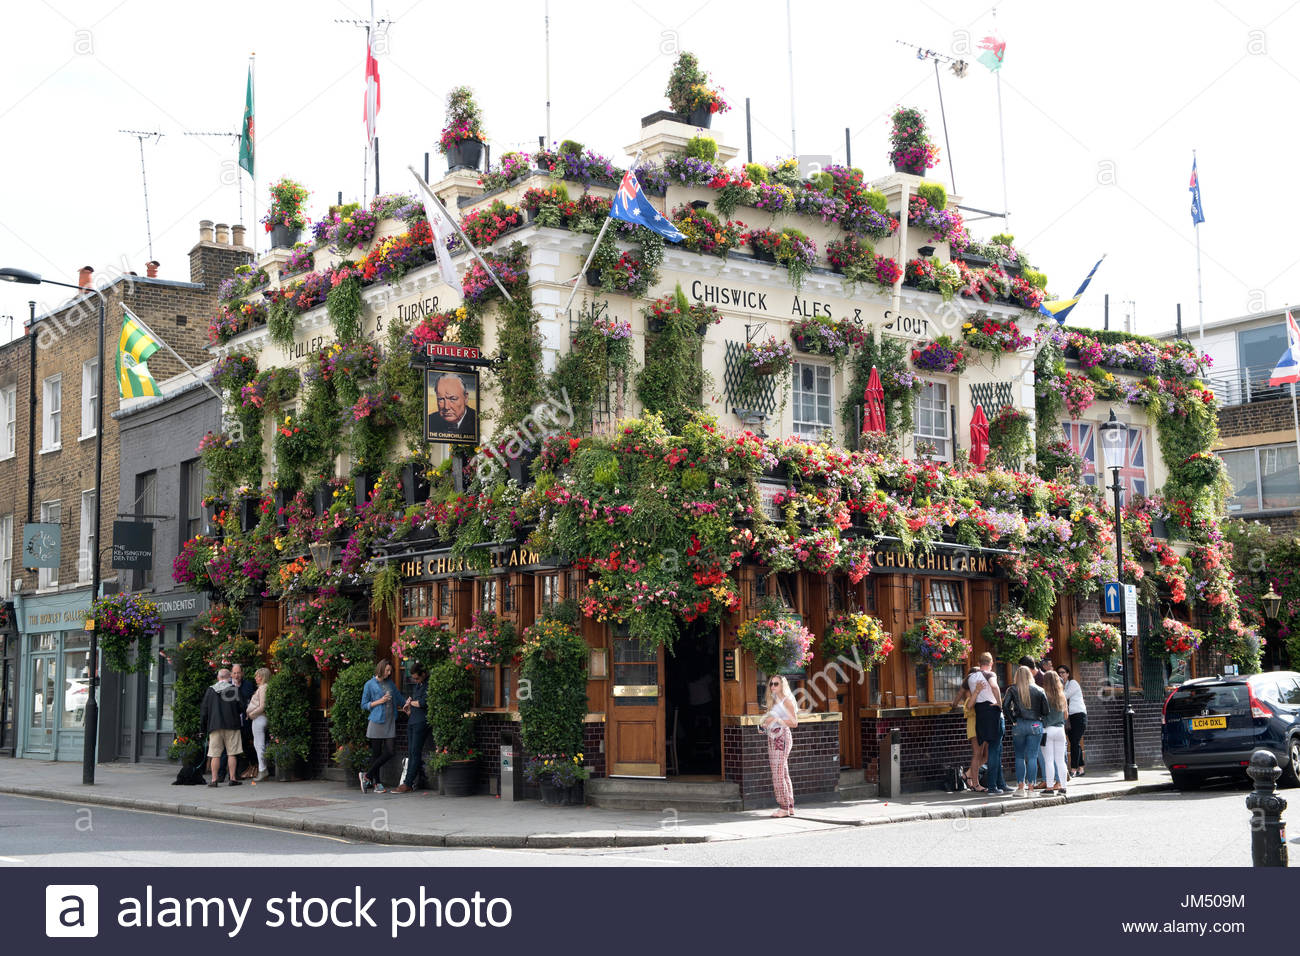 The Churchill Arms pub in Kensington, London in full Bloom with over a hundred hanging baskets, window boxes and tubs costing Fuller's £25k a year. - Stock Image